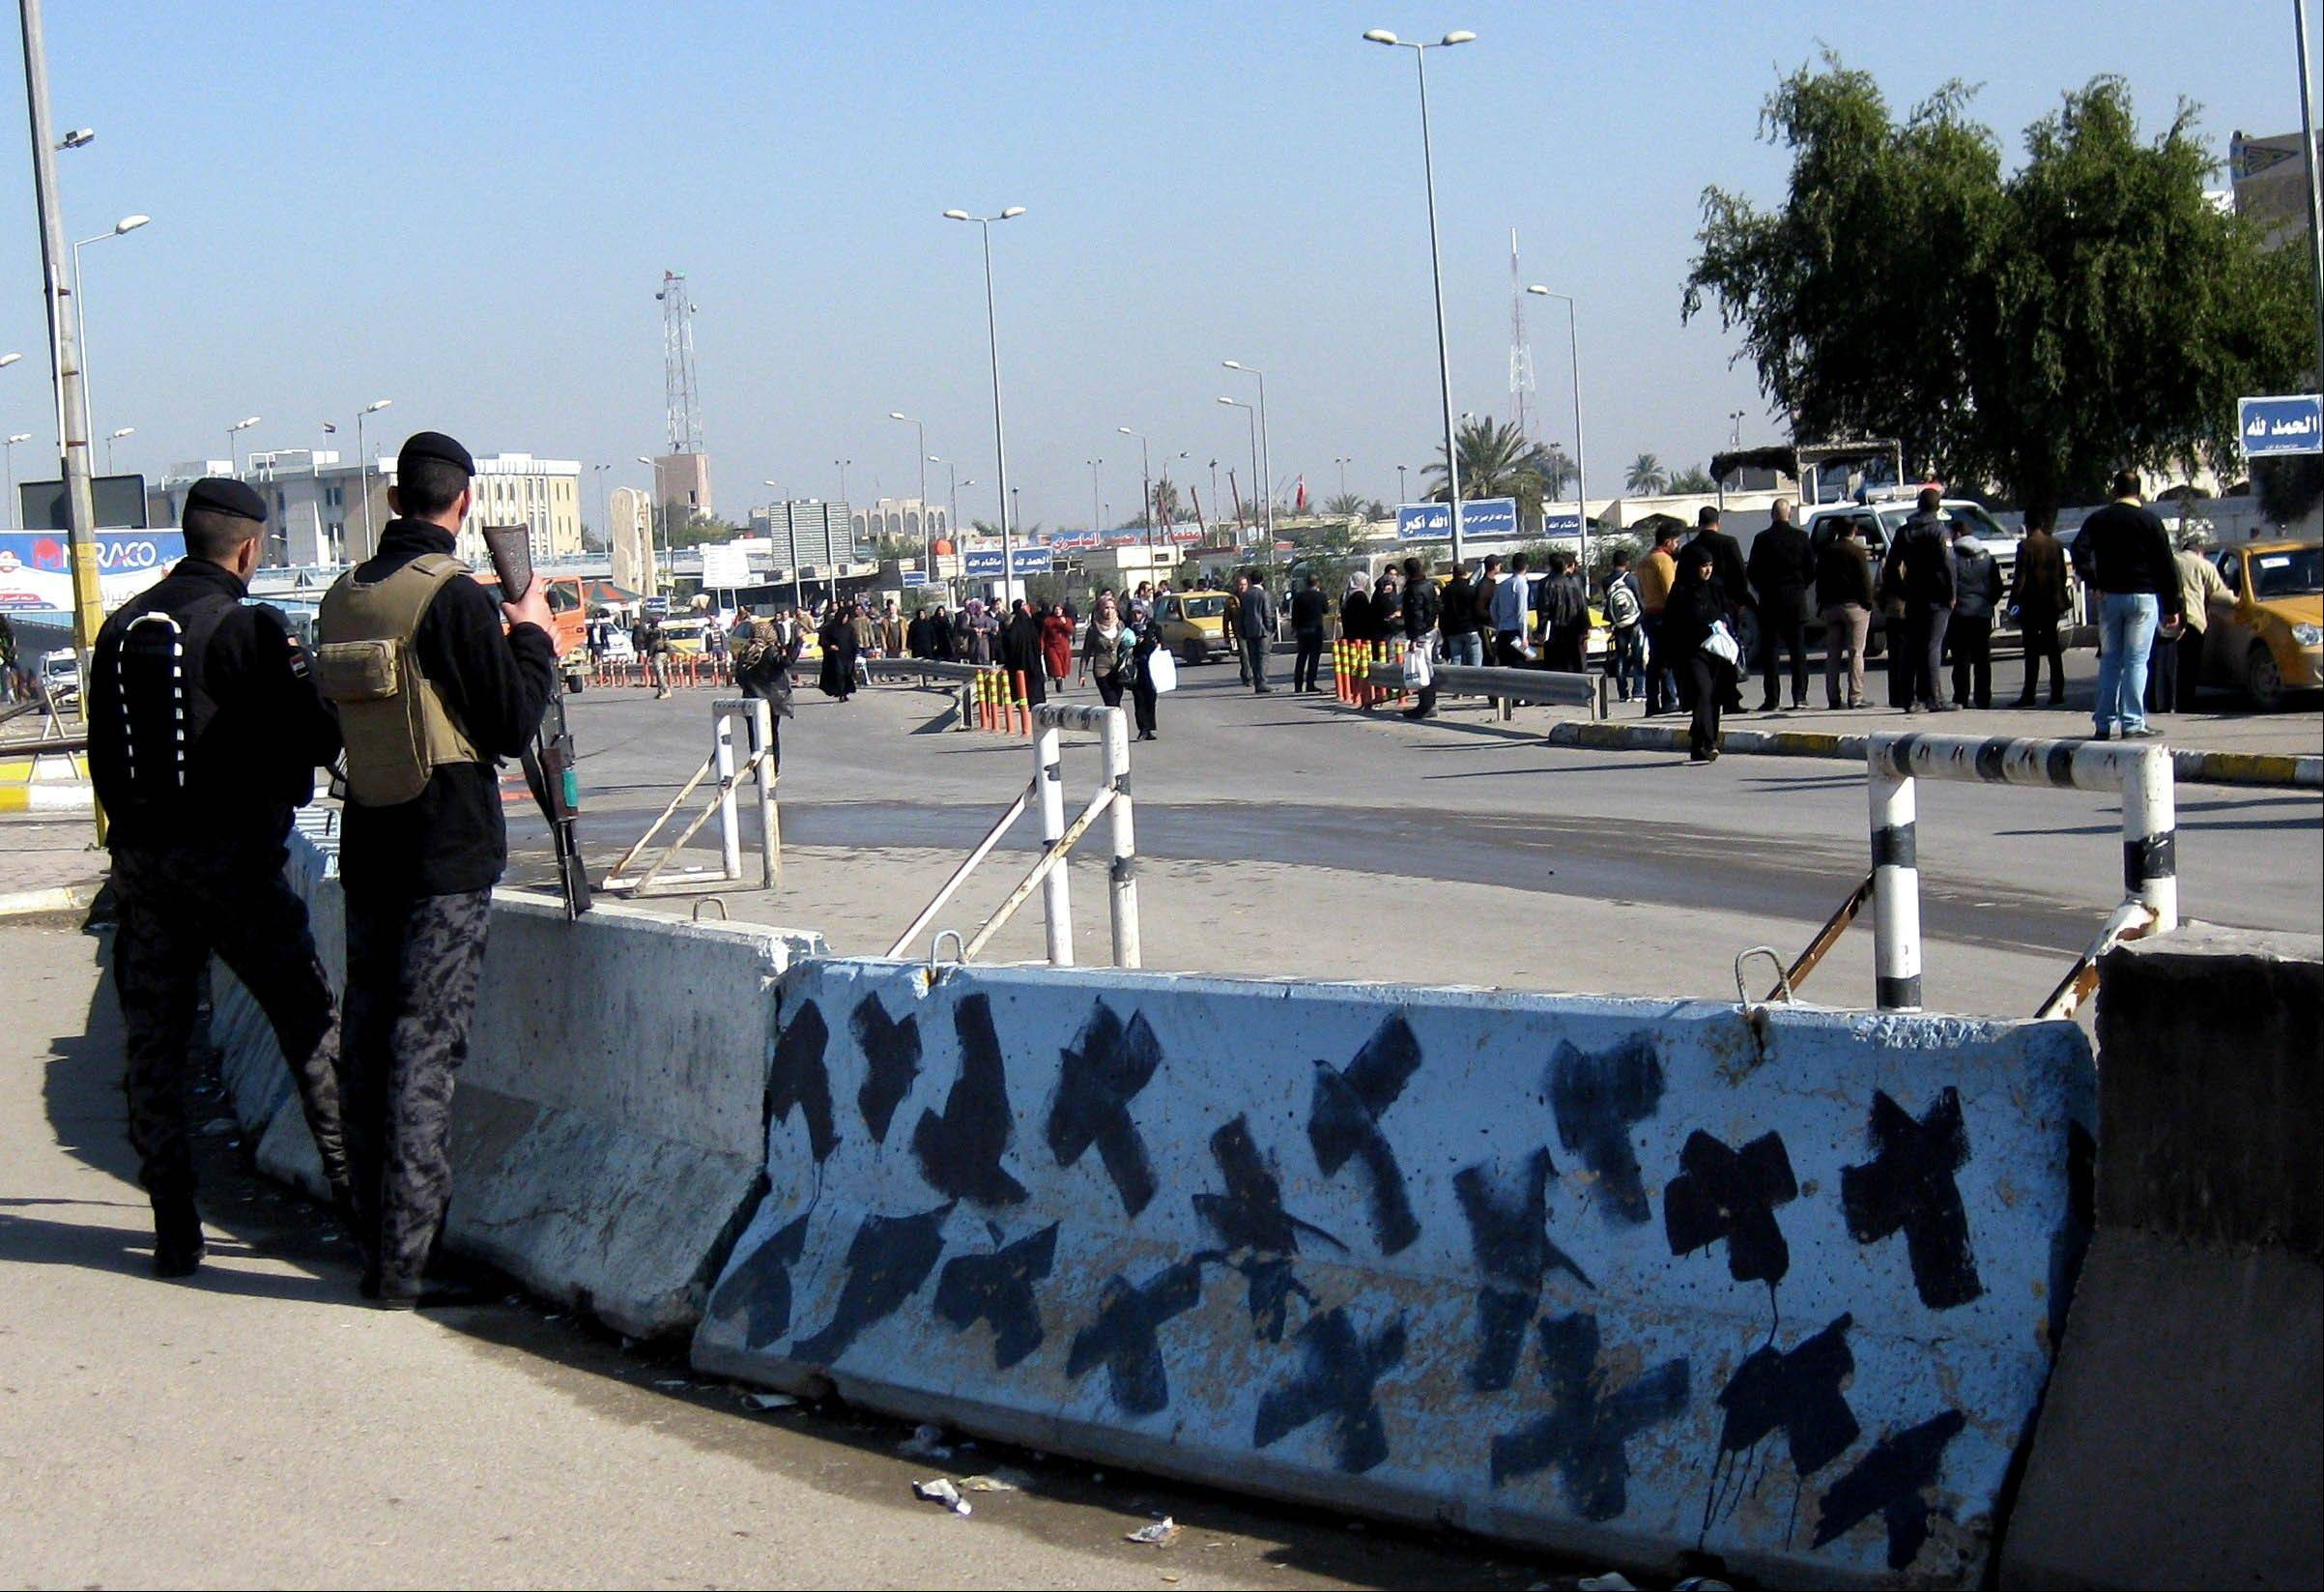 Iraqi security forces stand guard Sunday at the site of a bomb attack in Baghdad.